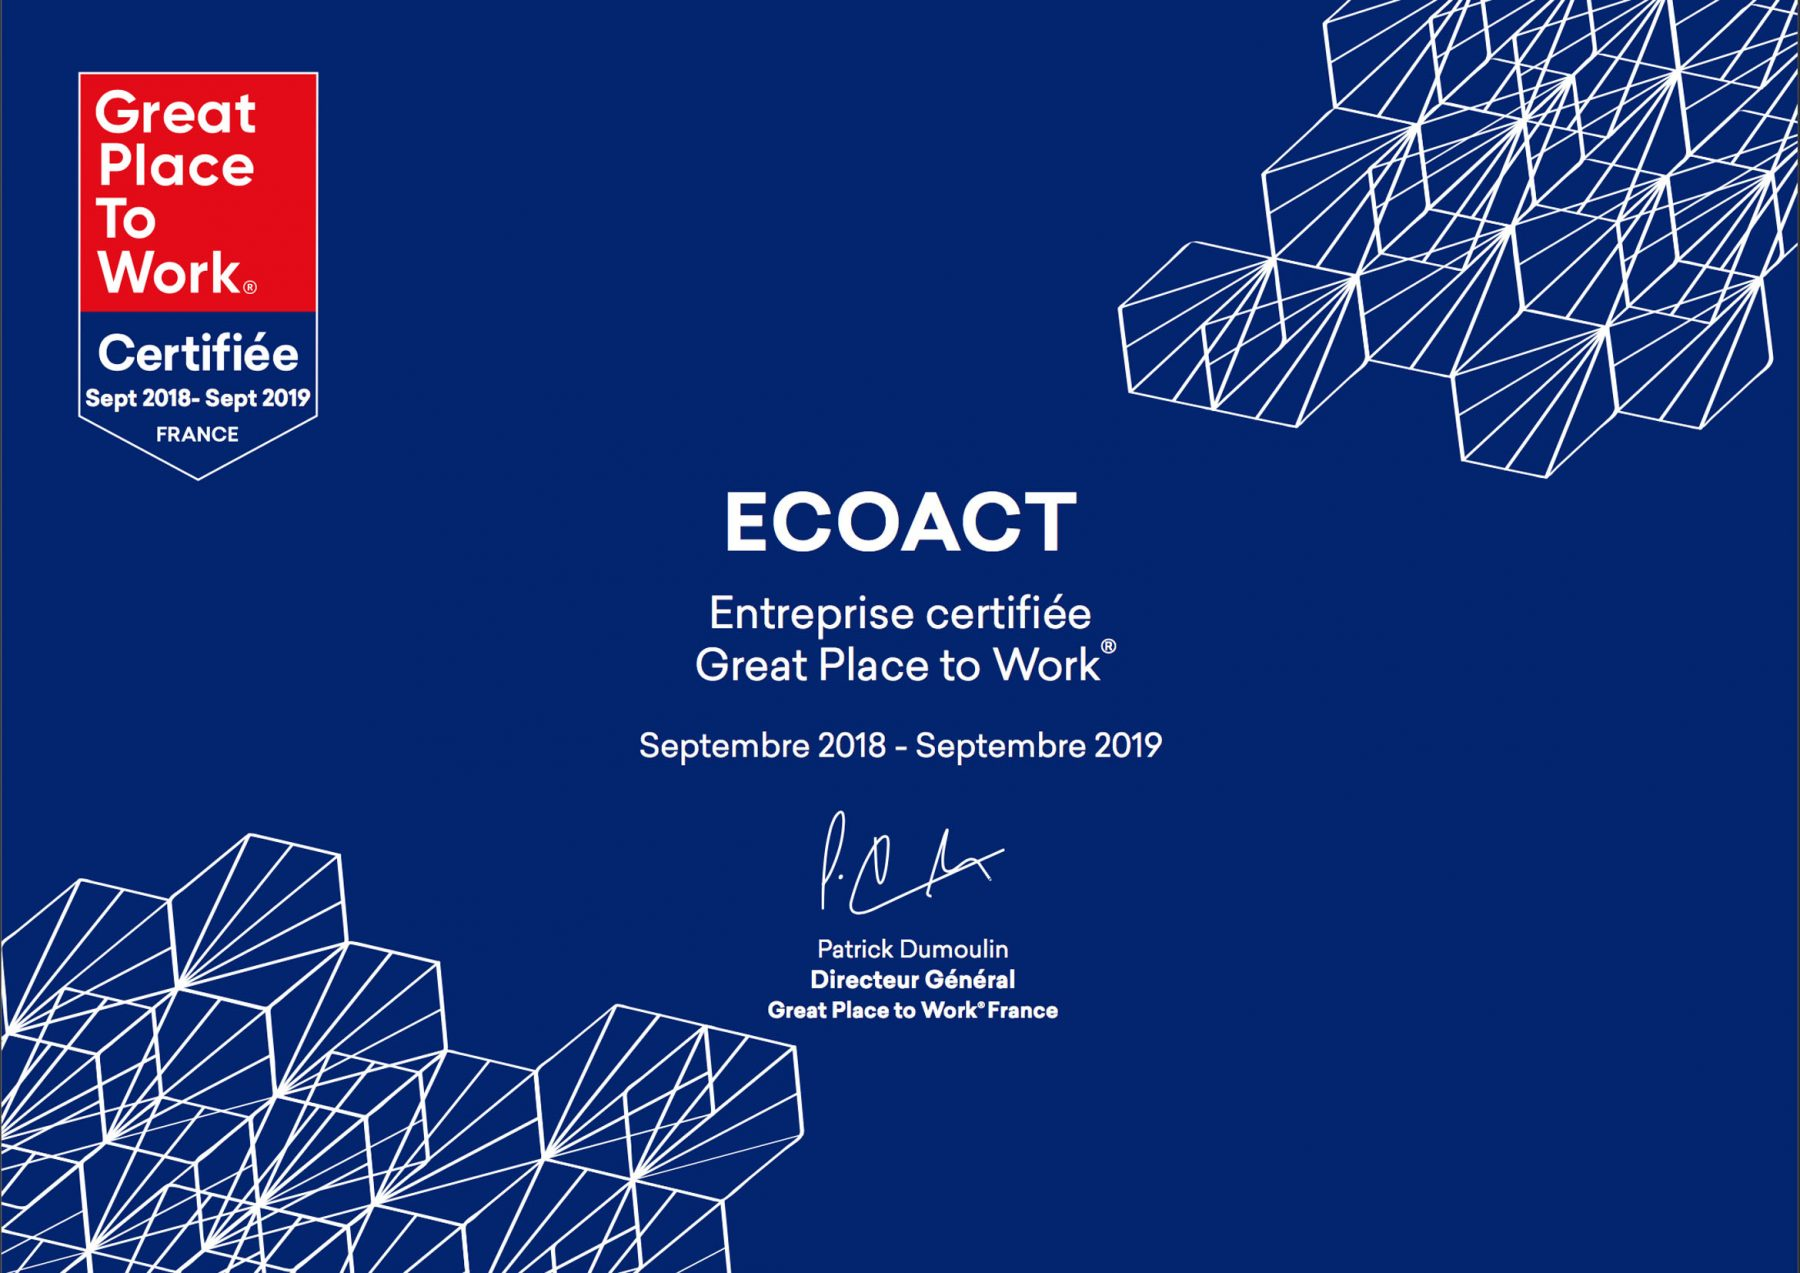 EcoAct - Environmental Consultancy - Great Place to Work - Certificate